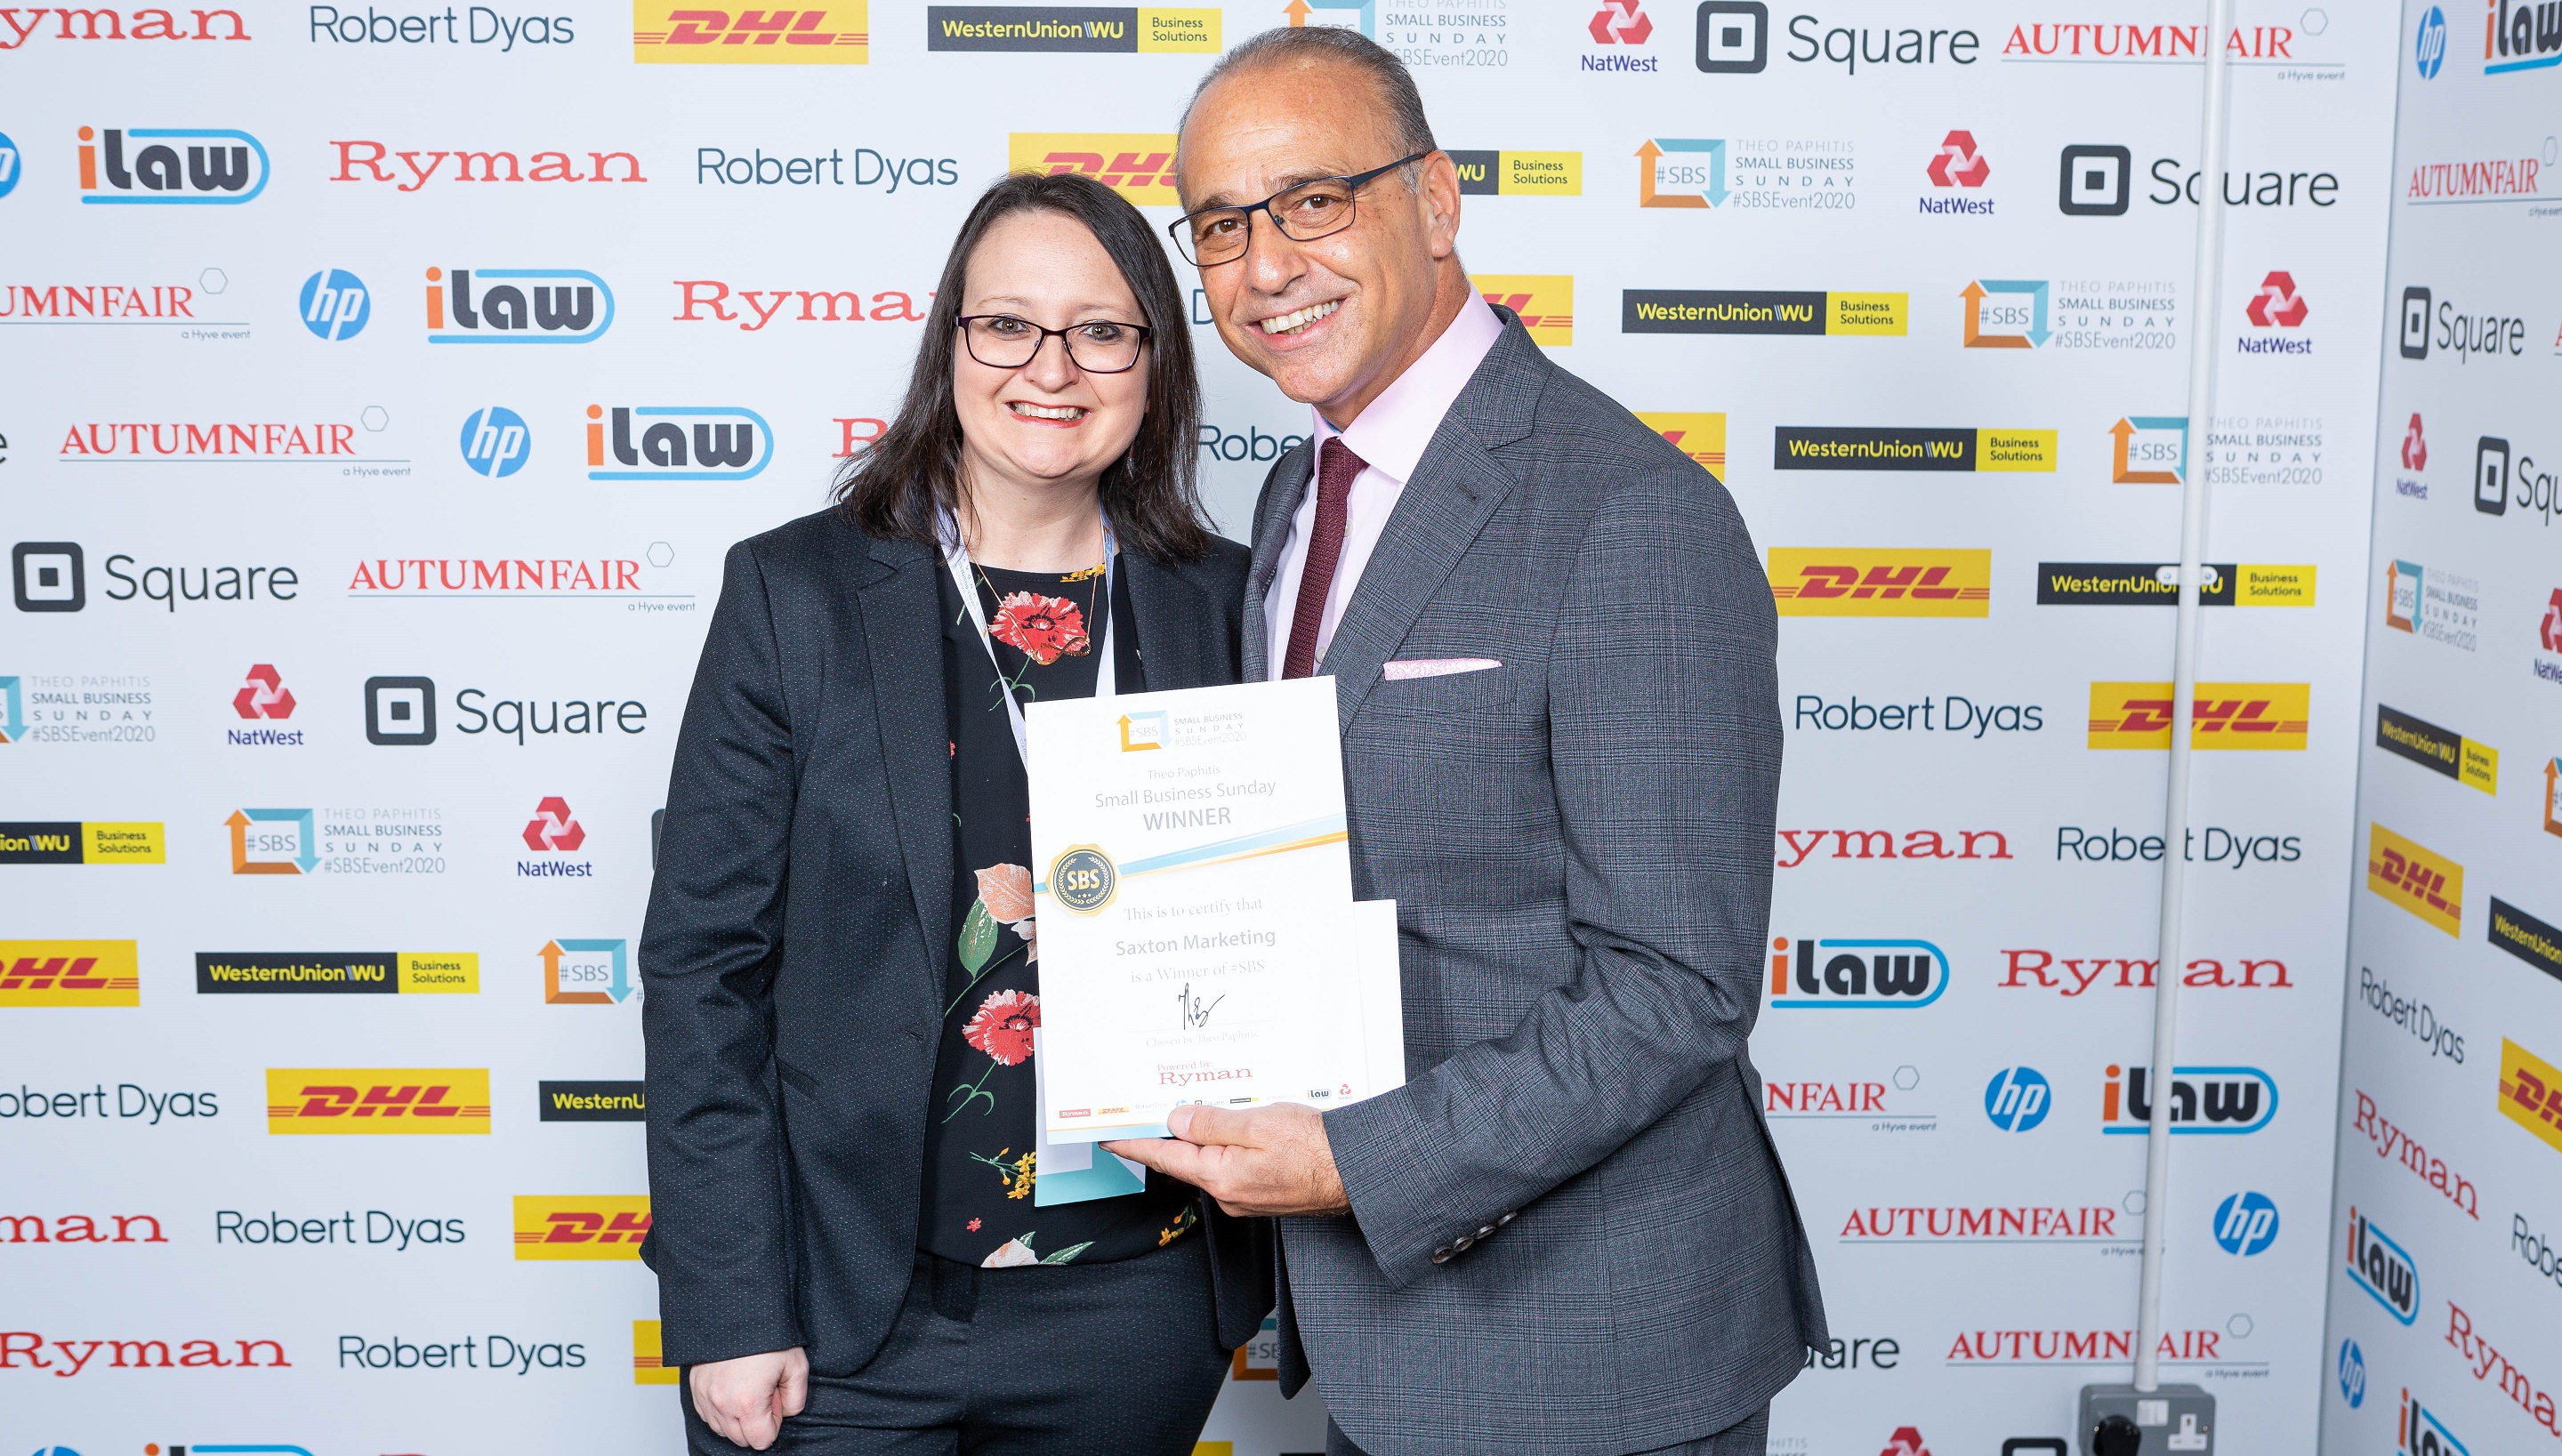 Derbyshire mum honoured by Theo Paphitis